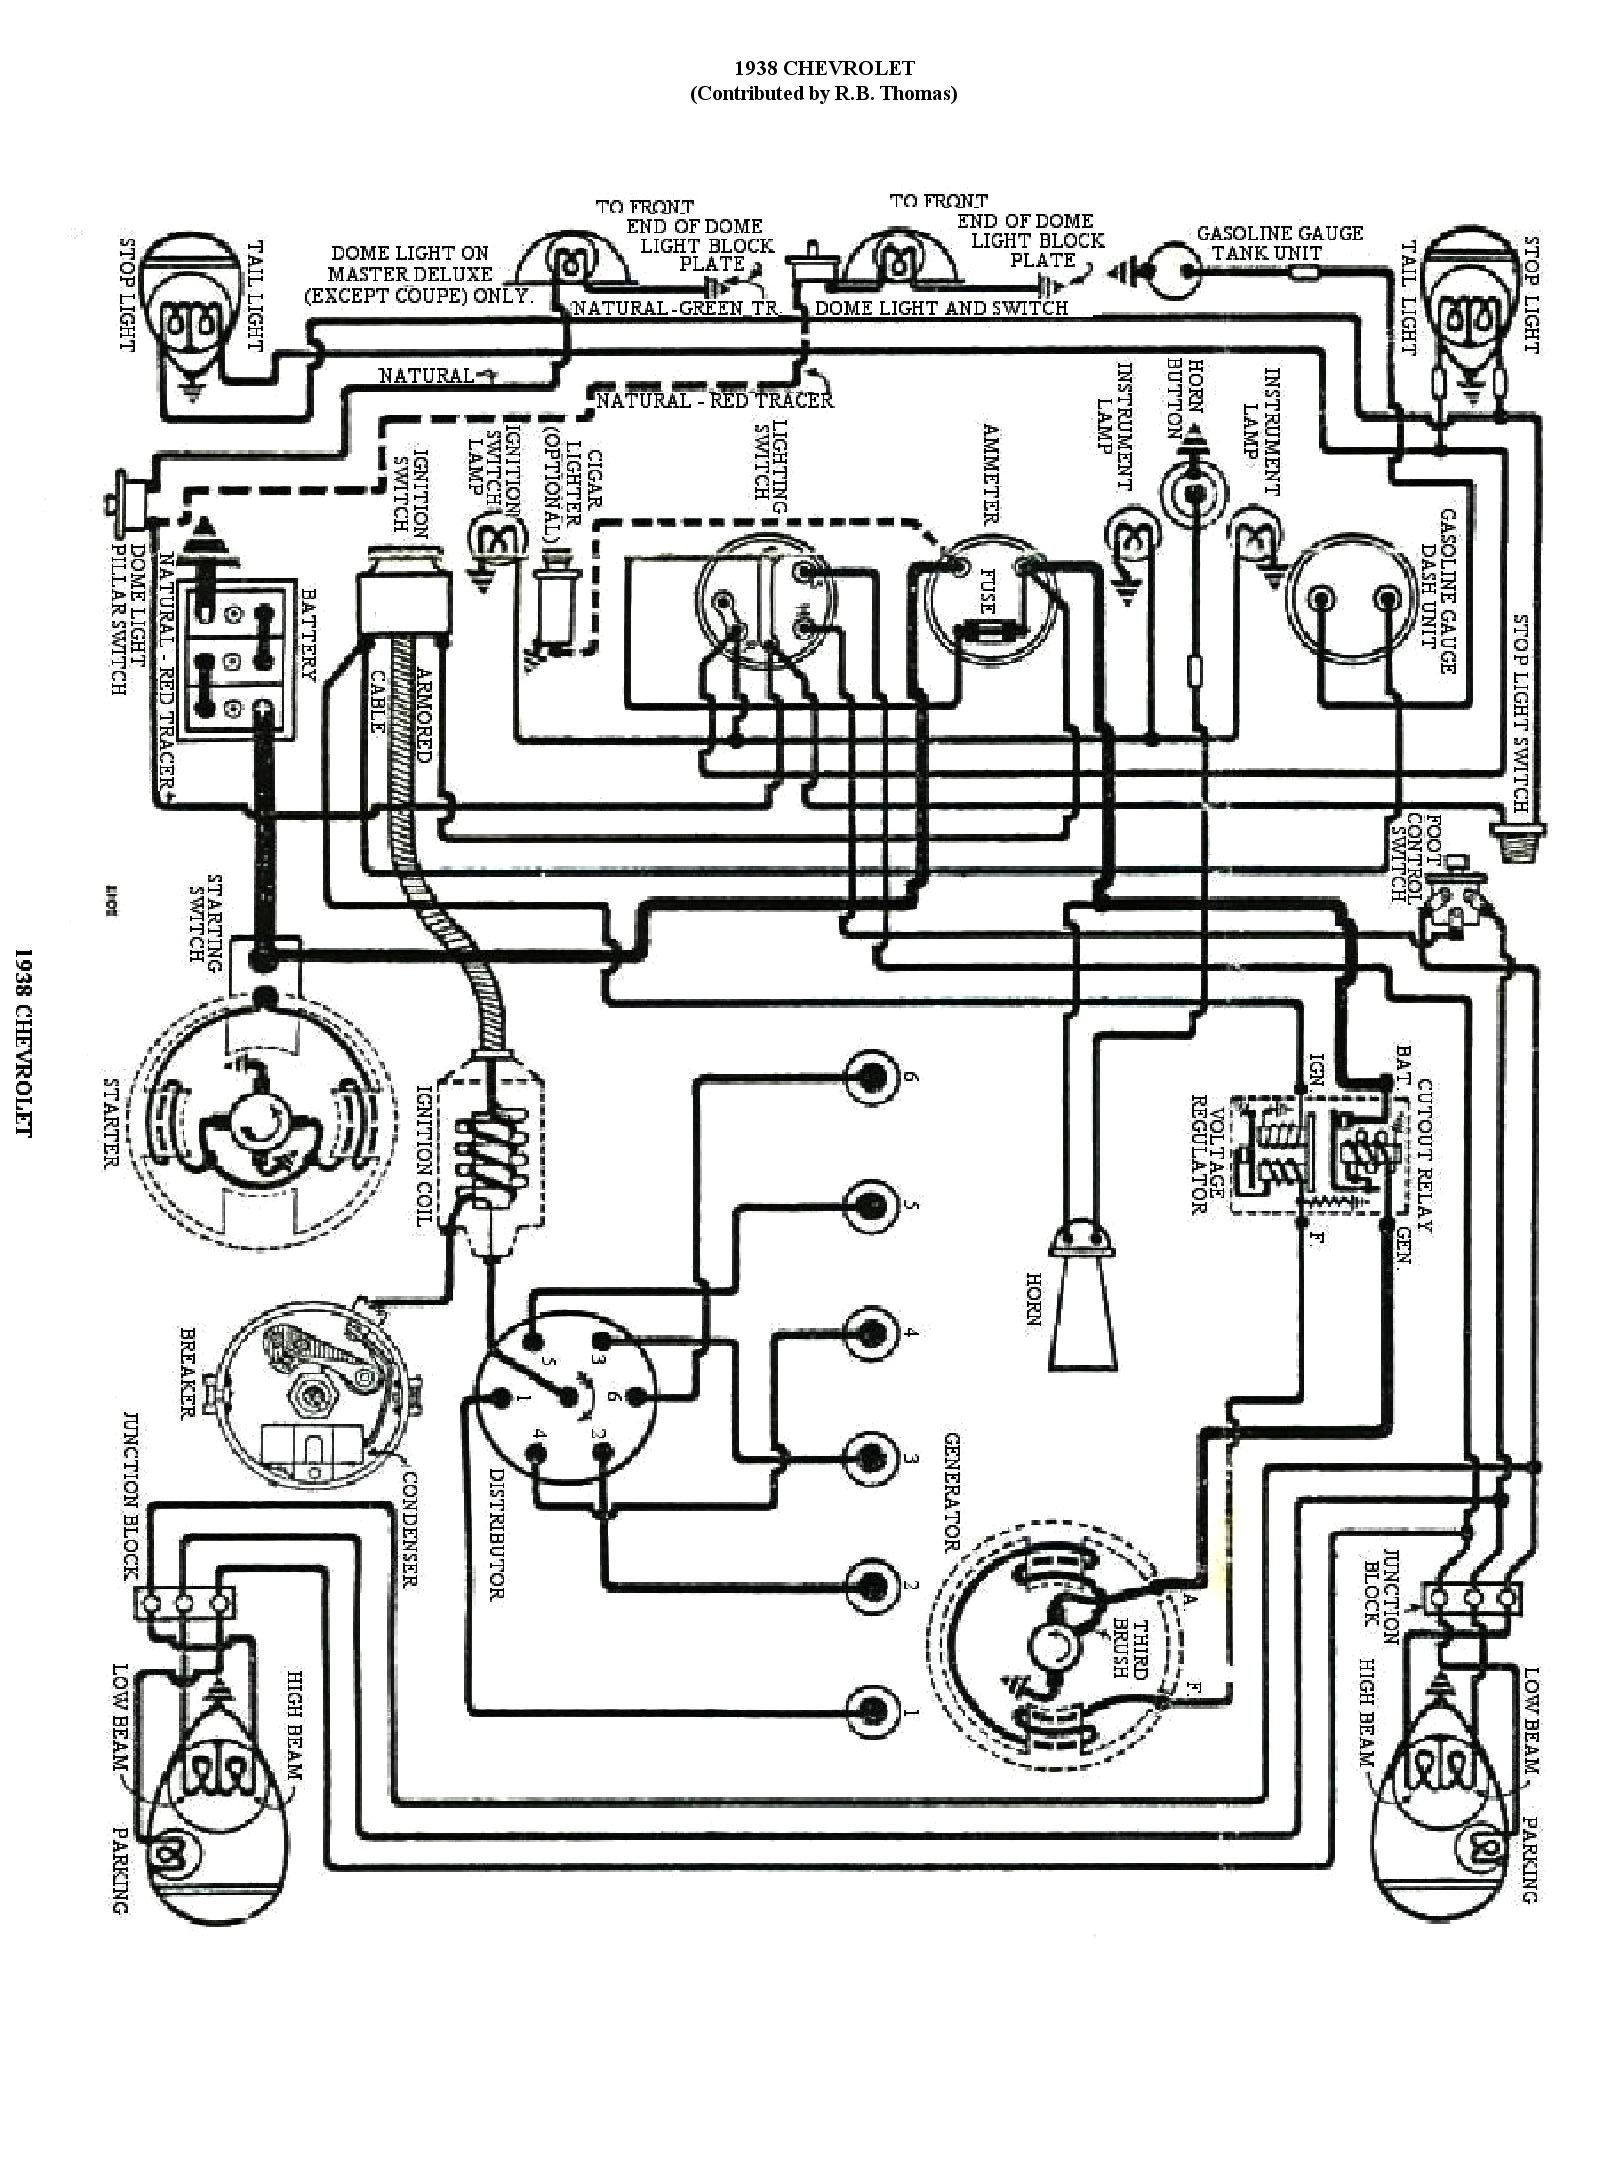 chevy 350 spark plug wiring diagram free picture wiring diagram Chevy 350 HEI Distributor hei connector wiring diagram free picture schematic wiring diagramchevy 350 spark plug wiring diagram free picture